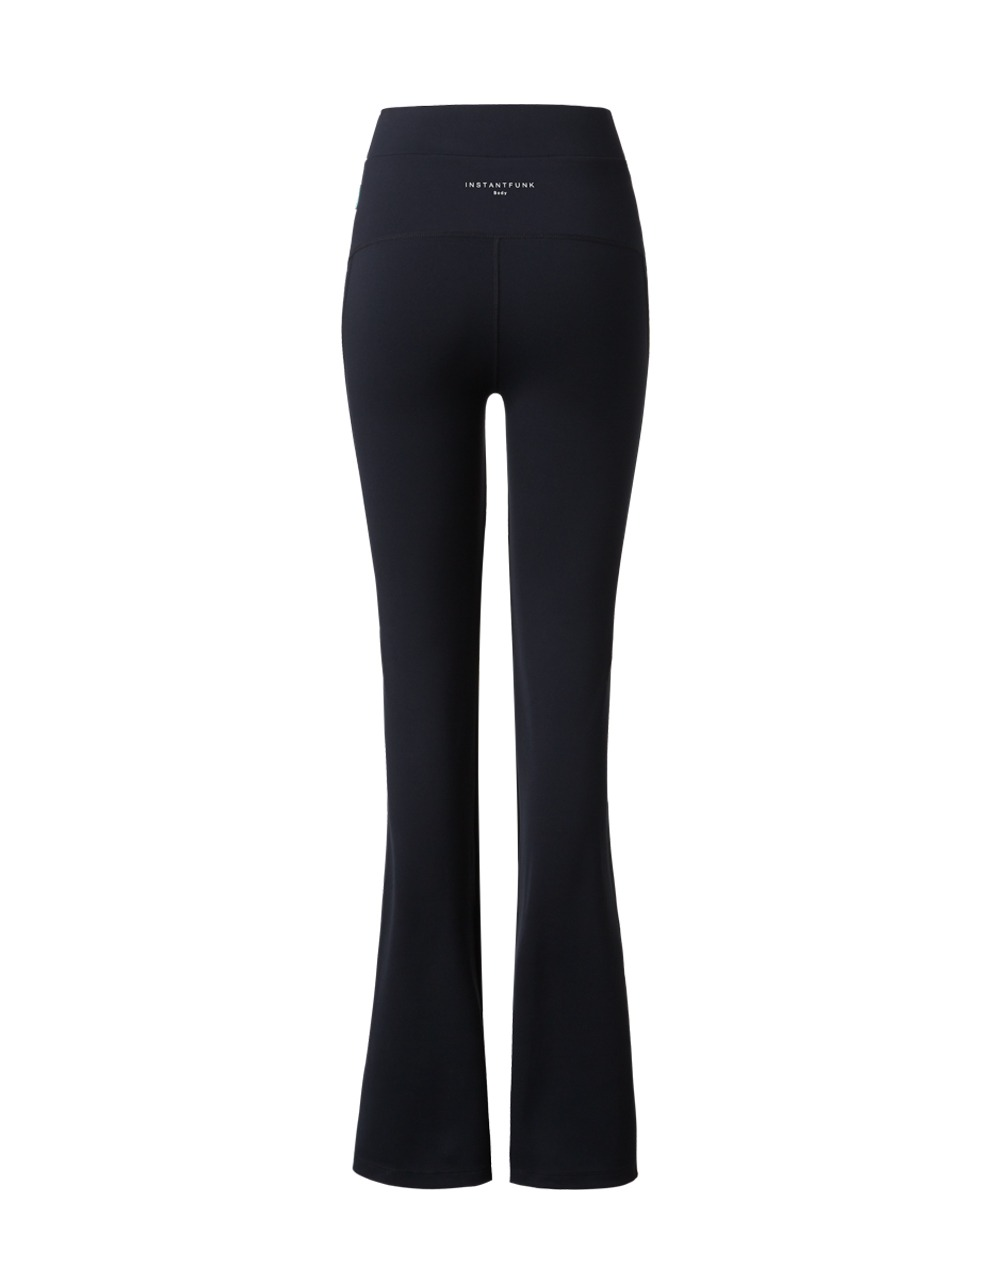 Volume Bootcut Leggings 01 - Black